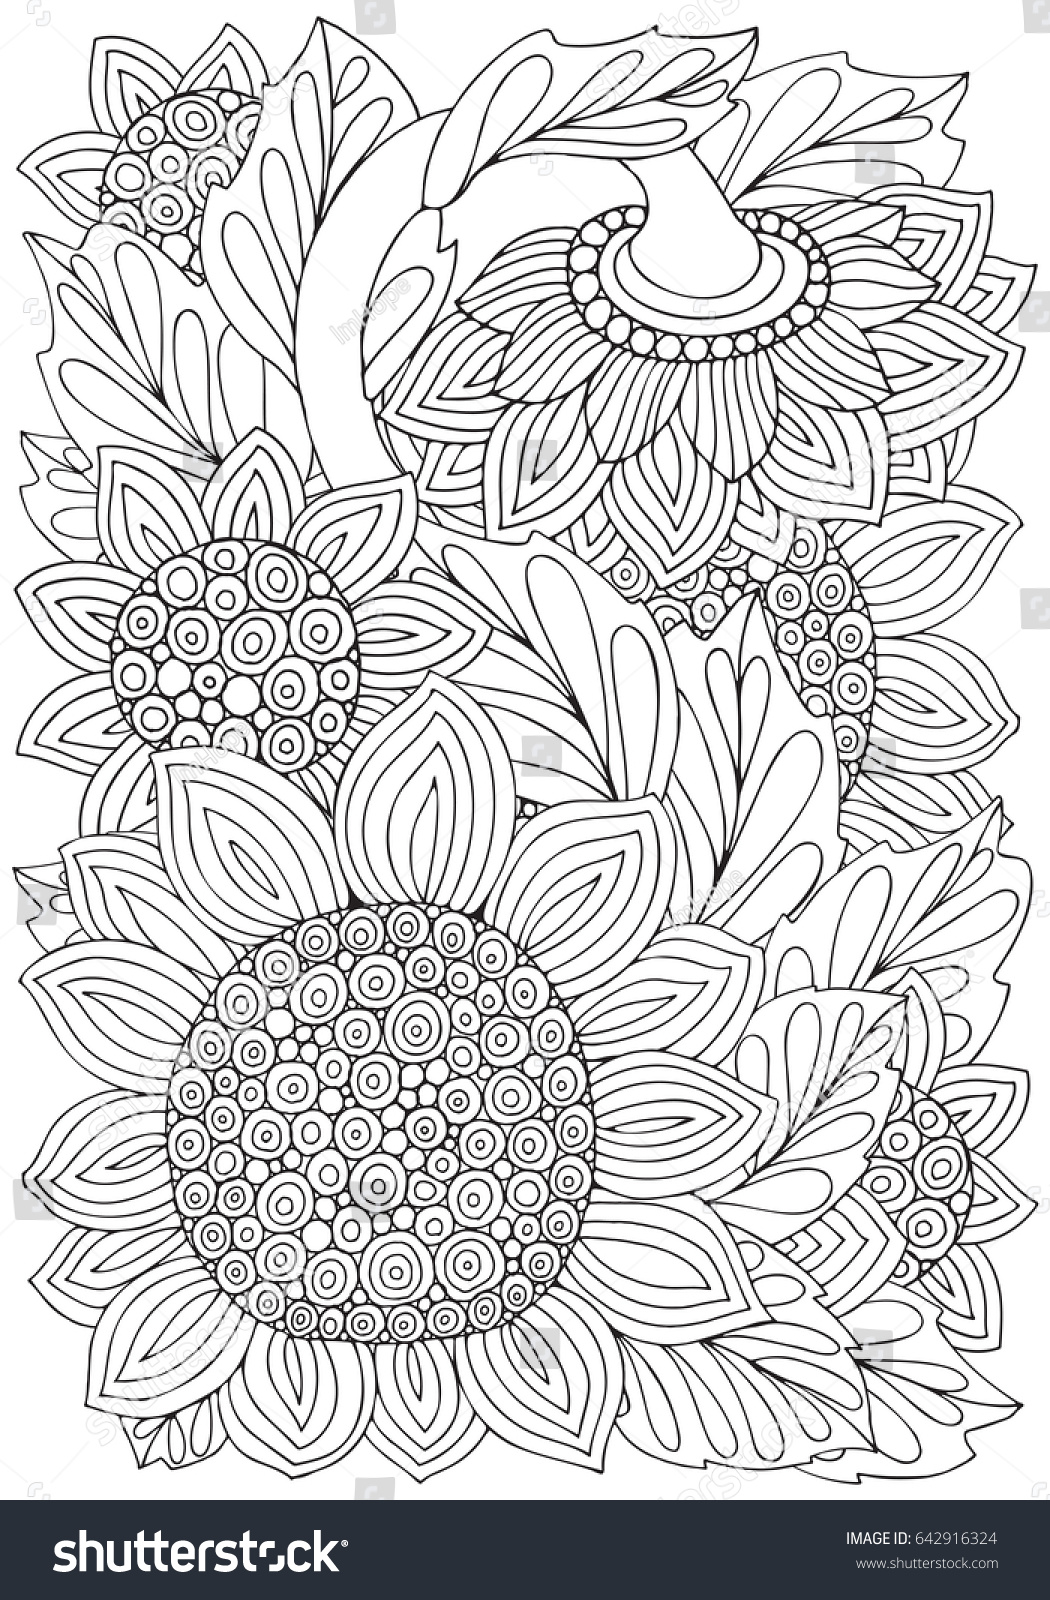 Coloring Pictures Of Sunflowers. Coloring book page with Sunflowers and leaf in zentangle style  A4 size Black Book Page Leaf Zentangle Stock Vector